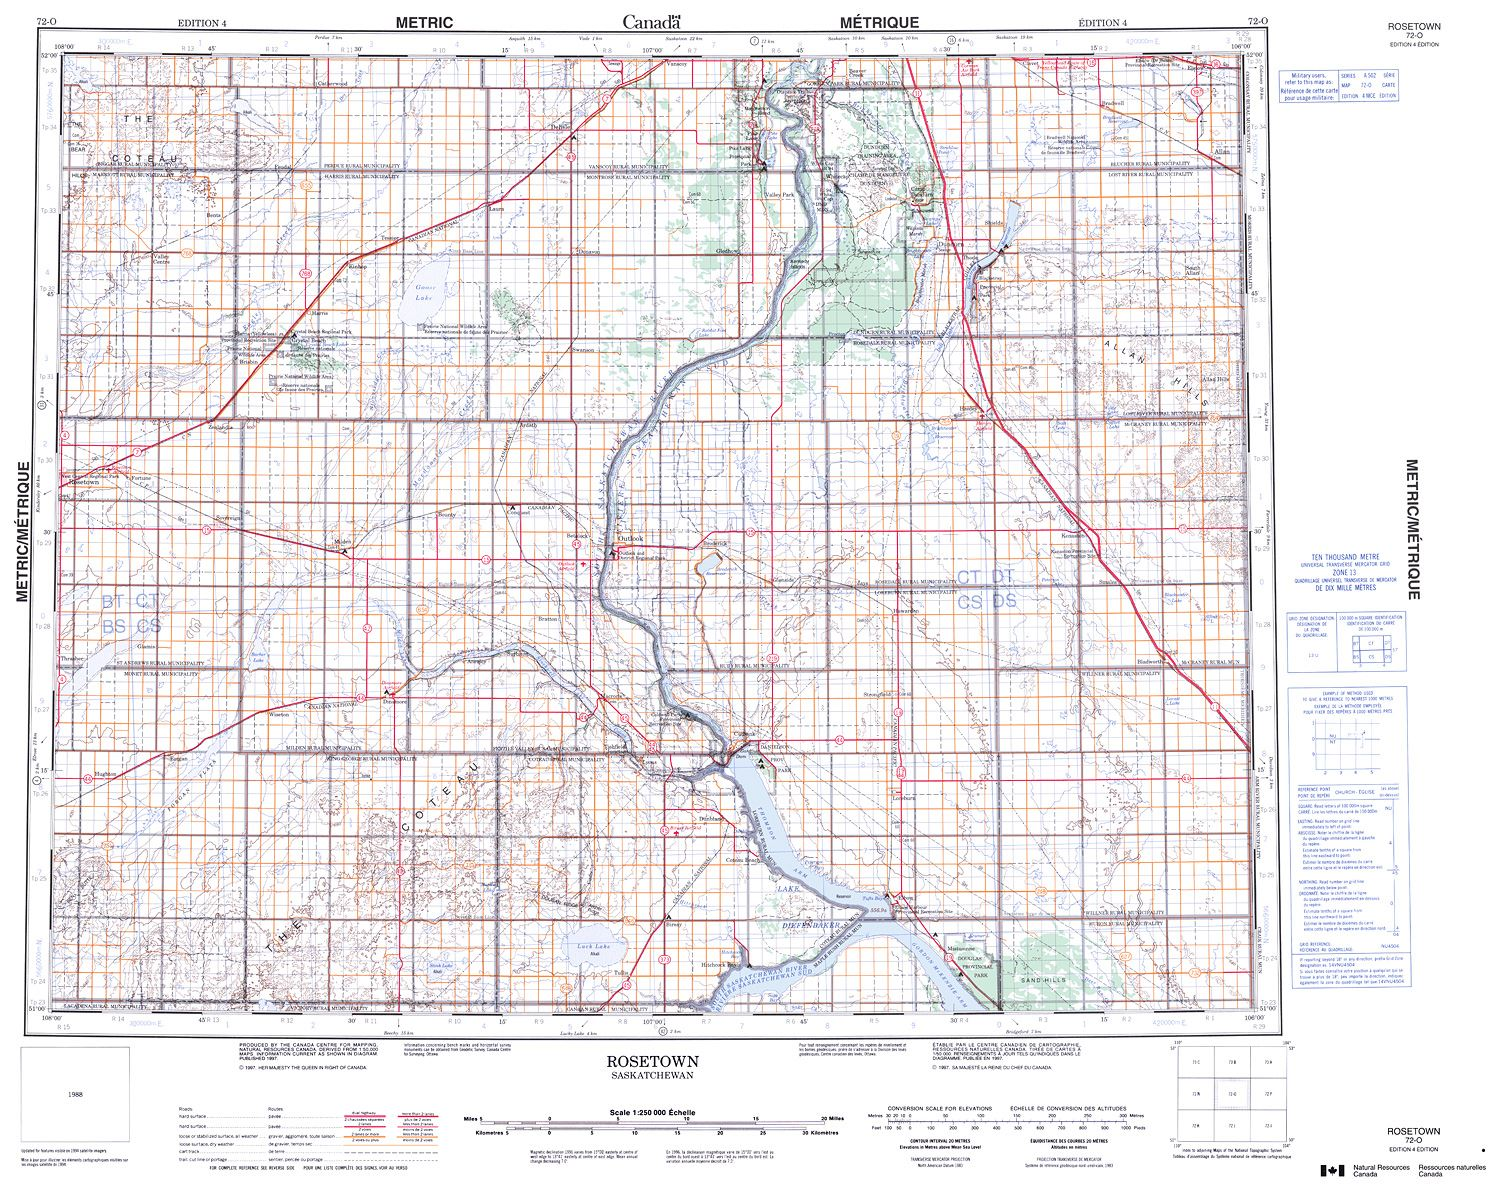 072O - ROSETOWN - Topographic Map